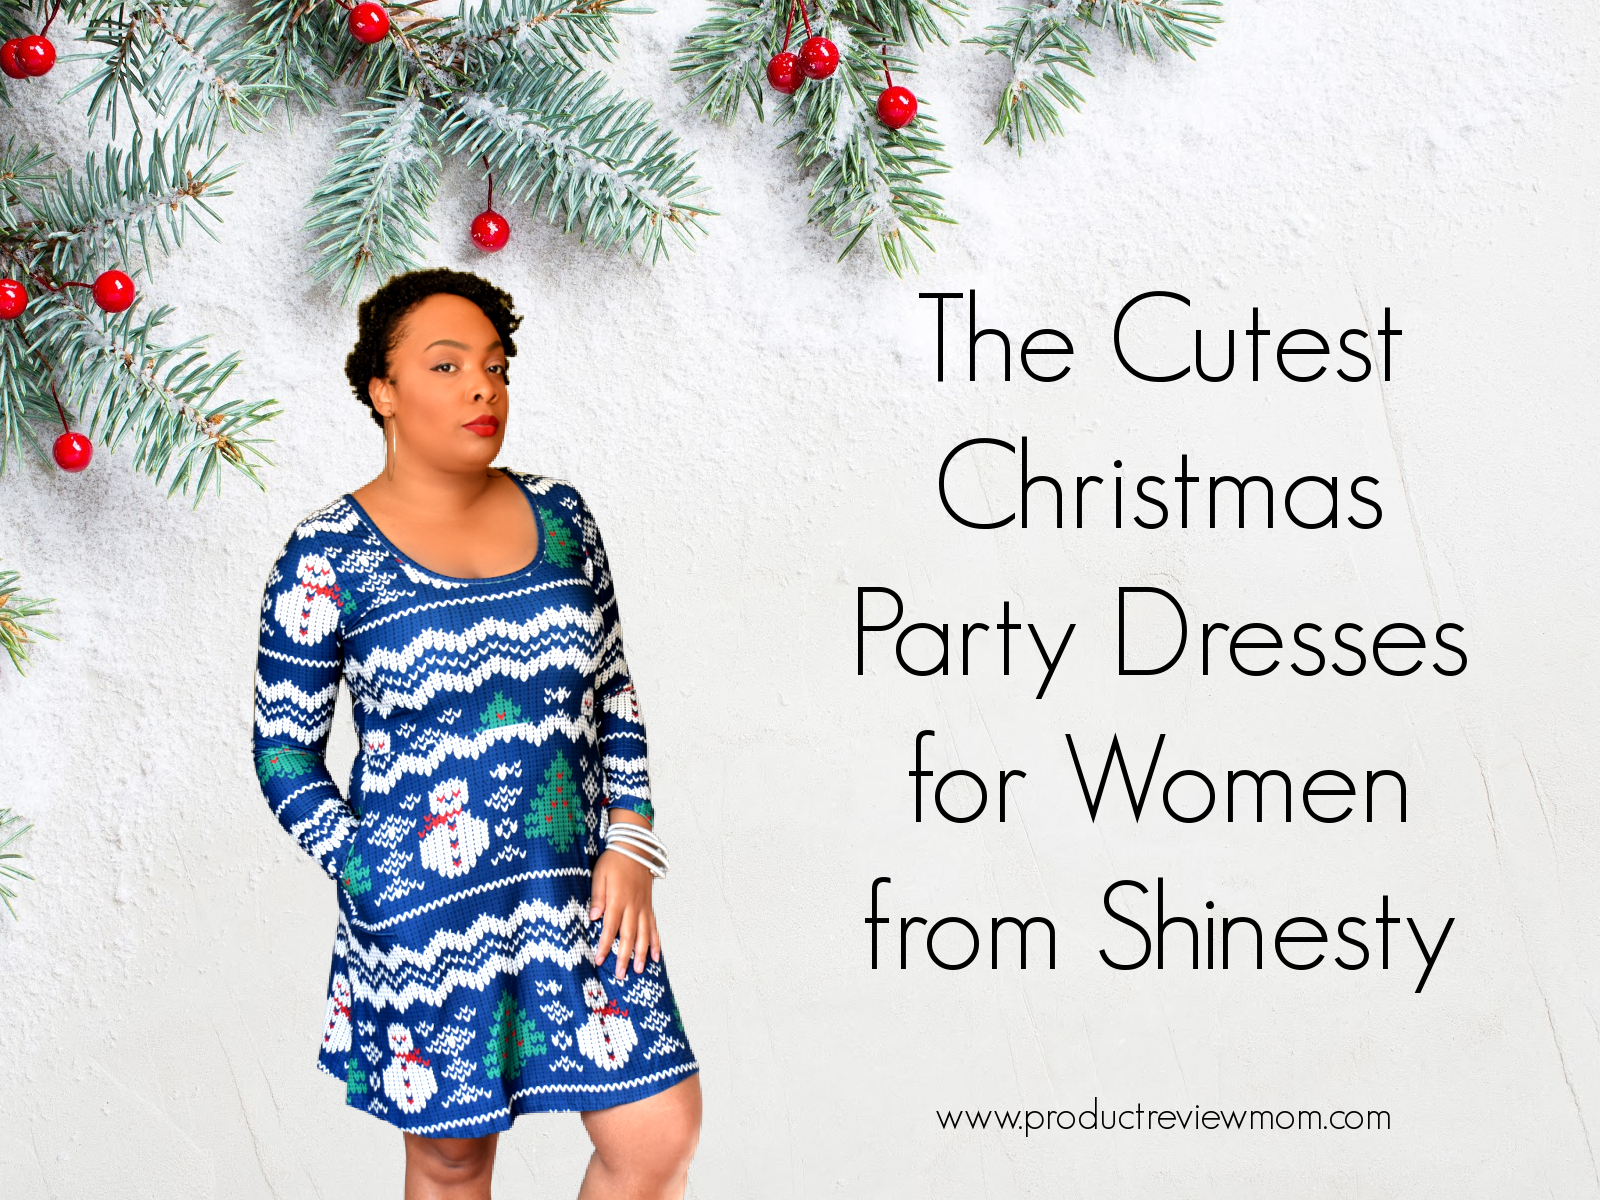 The Cutest Christmas Party Dresses for Women from Shinesty